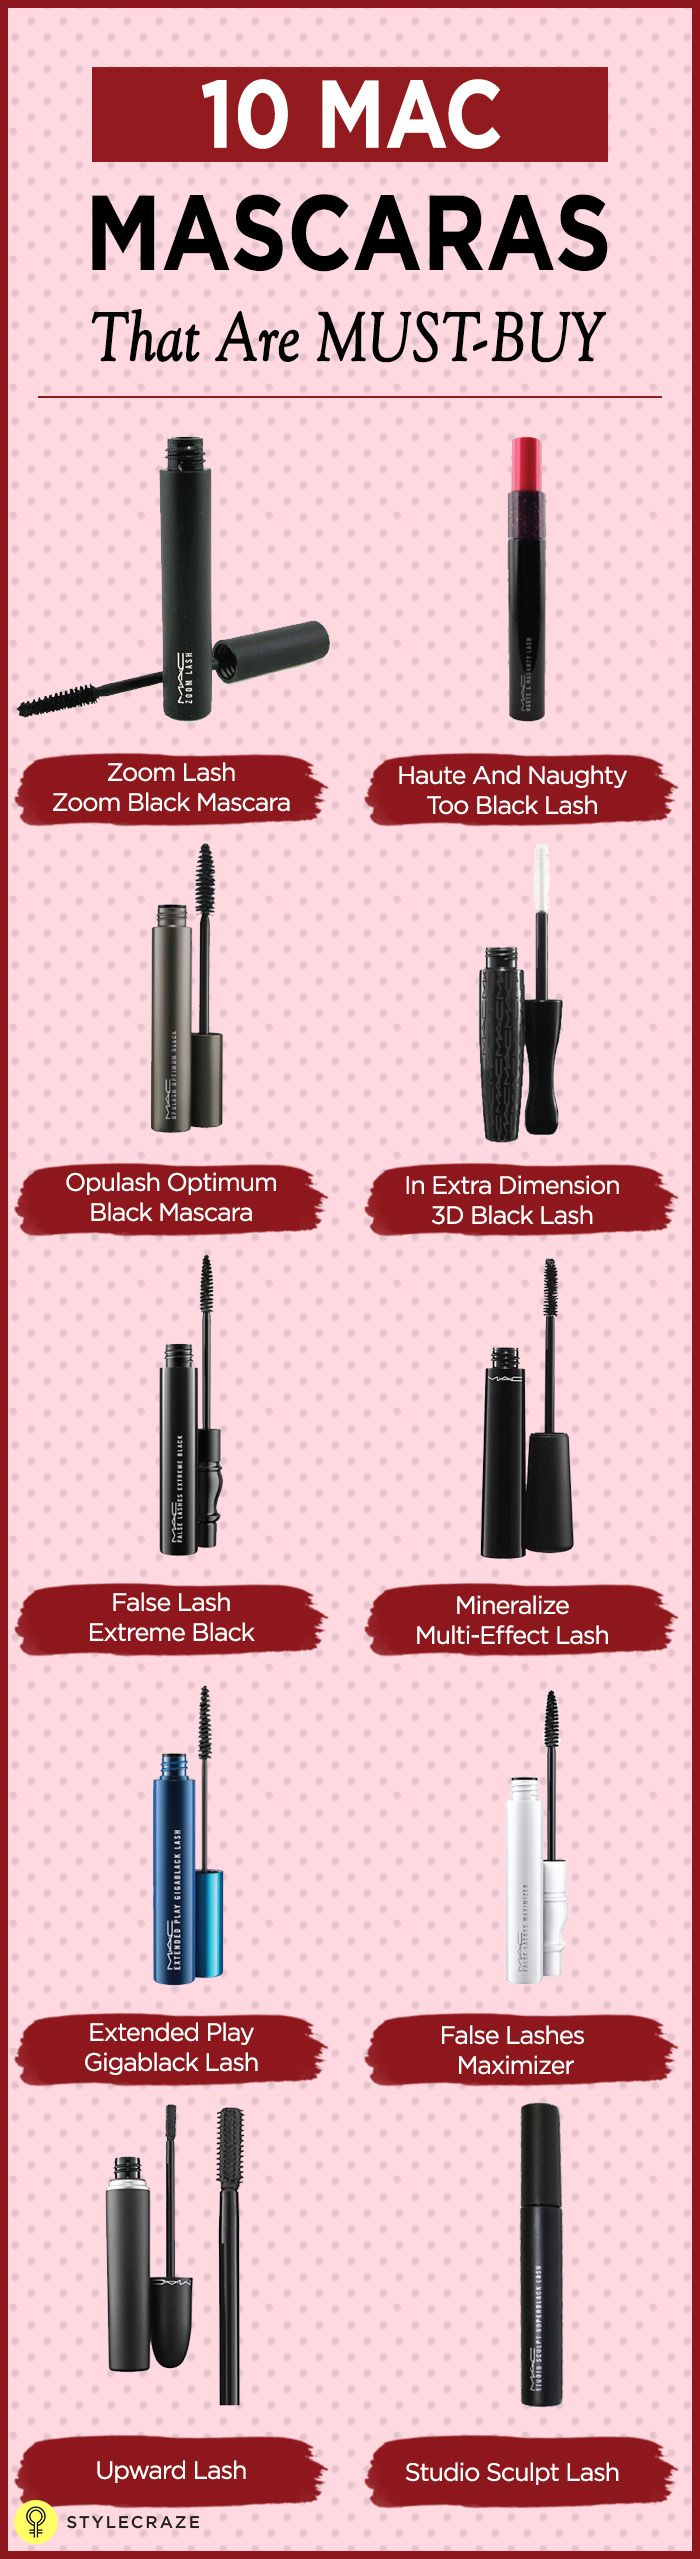 Everything about MAC oozes class. Be it the classy packaging or the quality of the products, MAC is synonymous with top-notch quality and mascaras are amongst the most sought-after products by MAC. They are something you should definitely try out, if you haven't already. Here are our top 10 picks of the best mascaras from the brand. #EyeMakeup